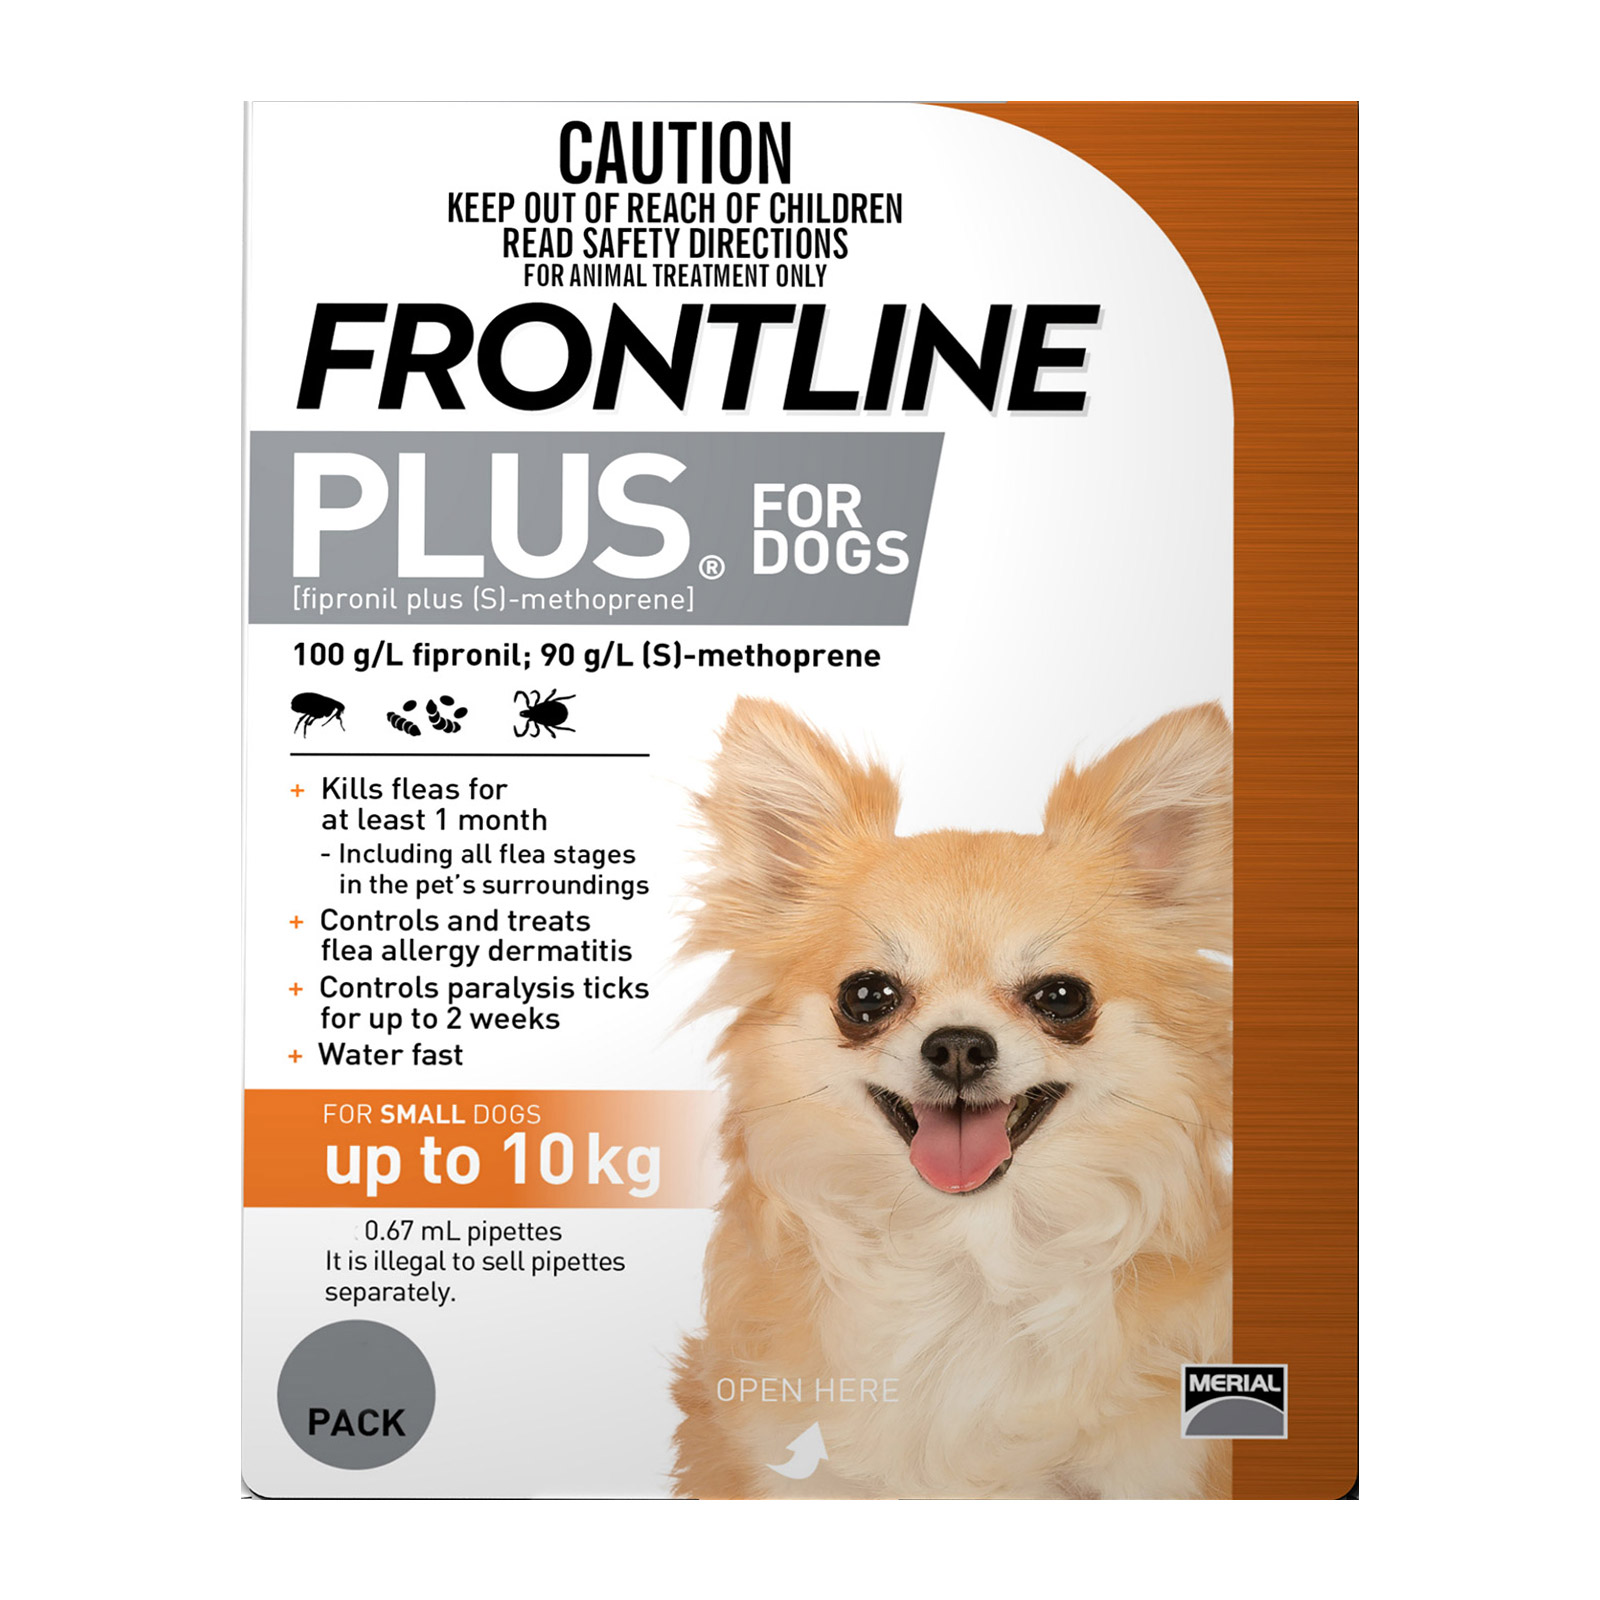 frontline-plus-for-small-dogs-up-to-10kg-orange.jpg